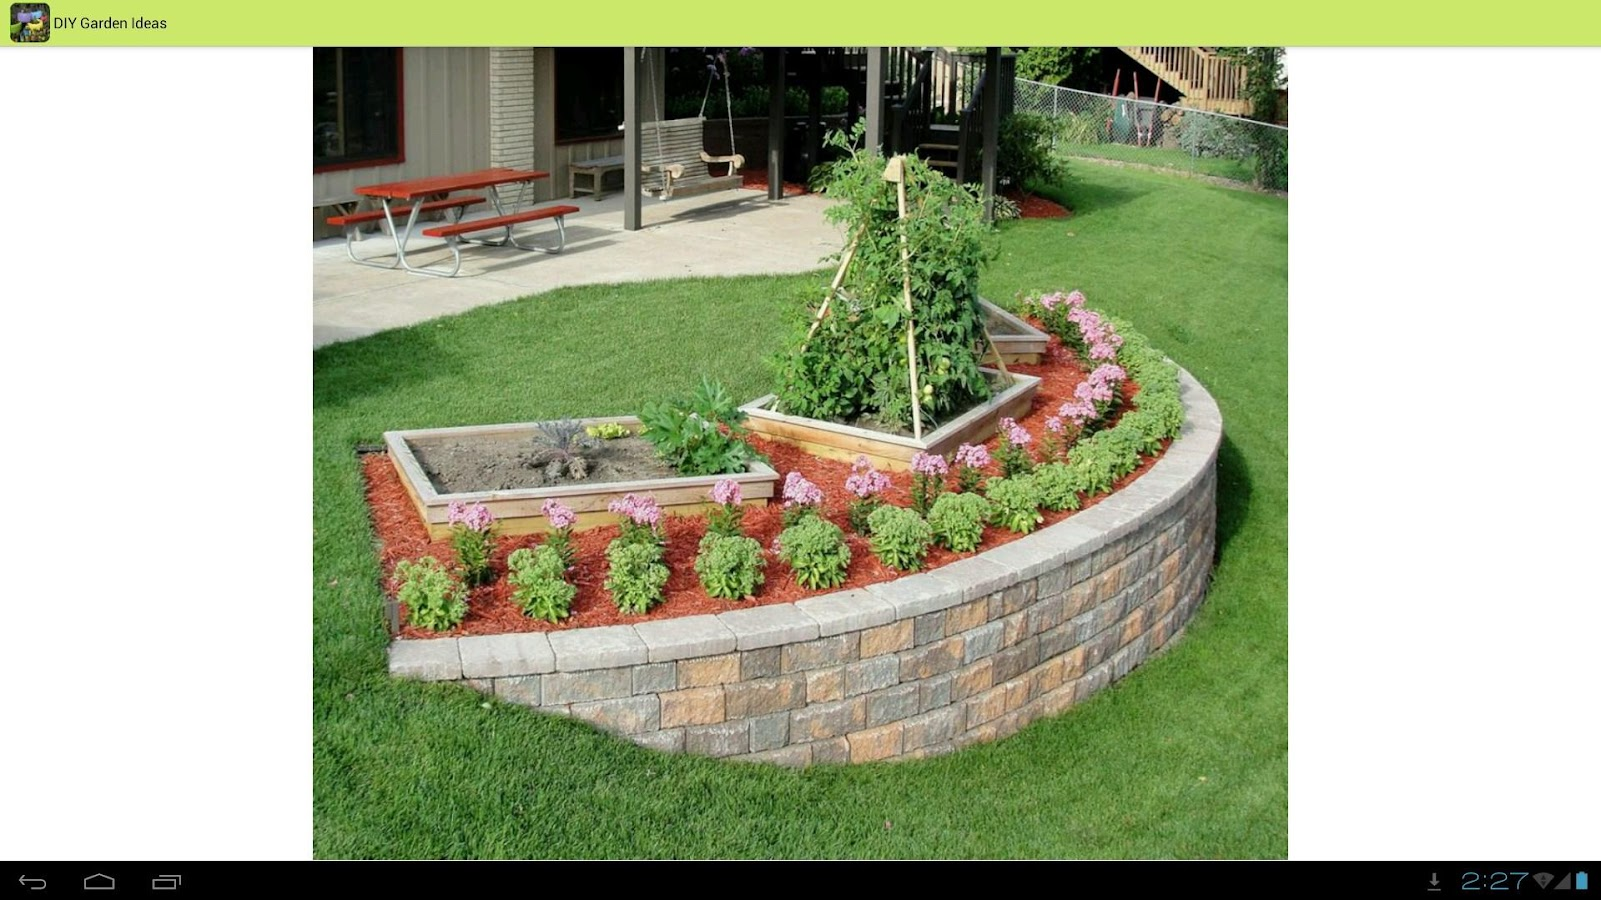 Garden Ideas Diy diy garden ideas - home design ideas - murphysblackbartplayers